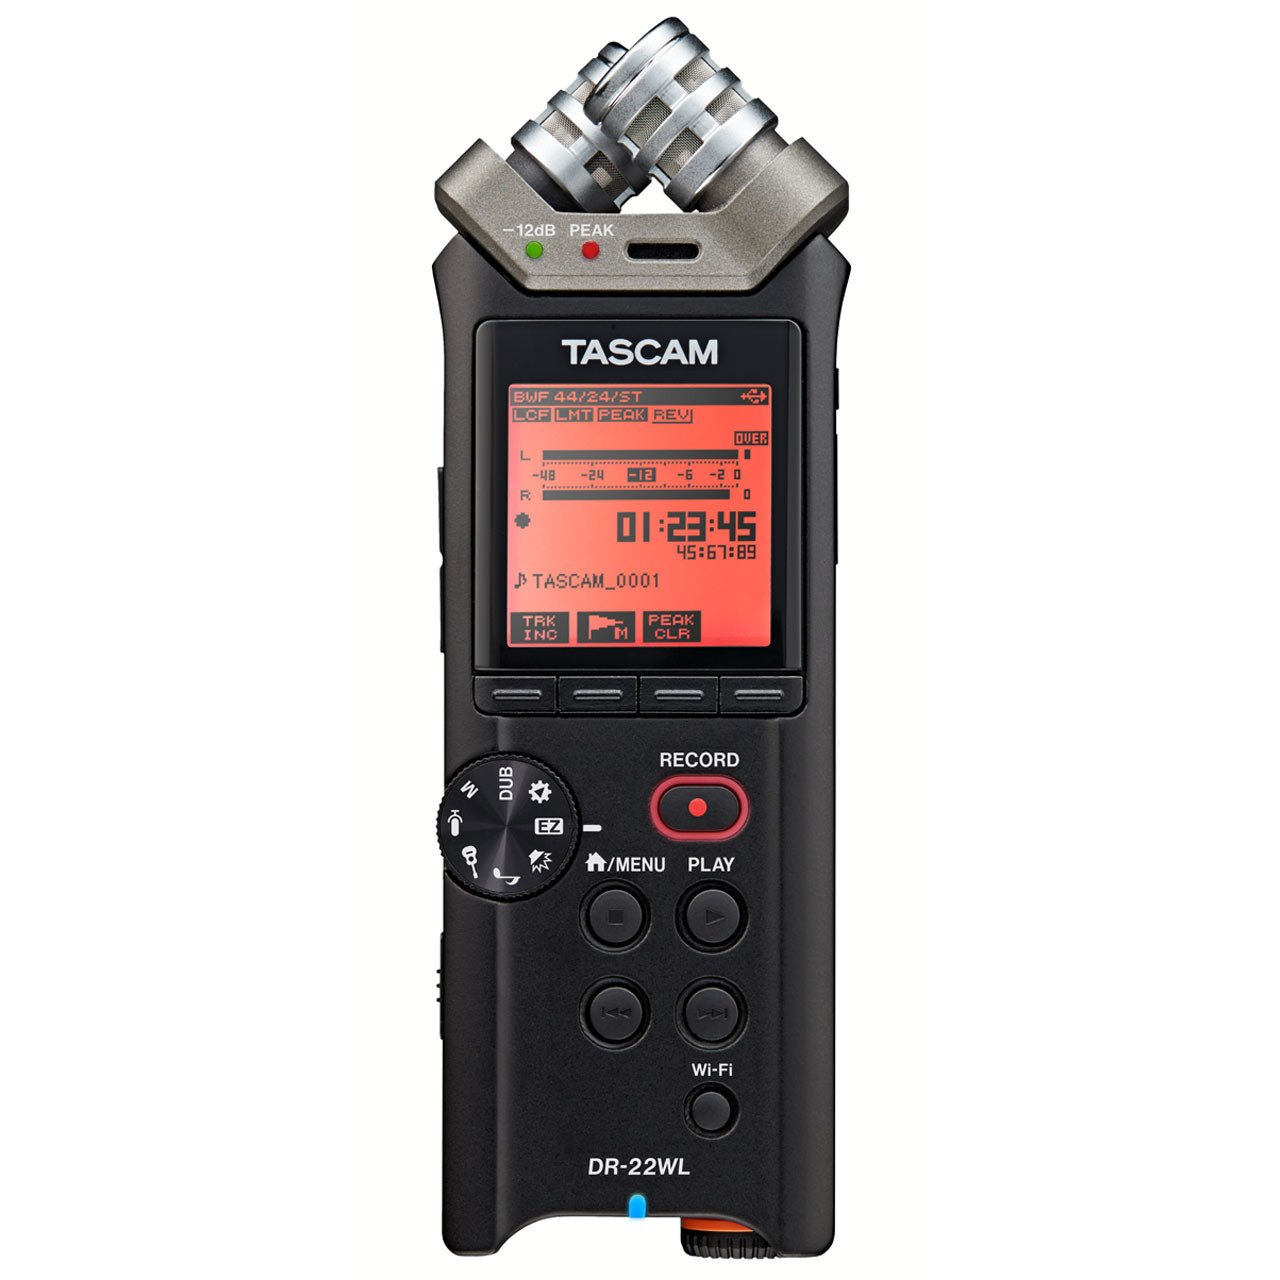 Portable Recorder - Tascam DR-22WL Handheld Digital Recorder With WIFI